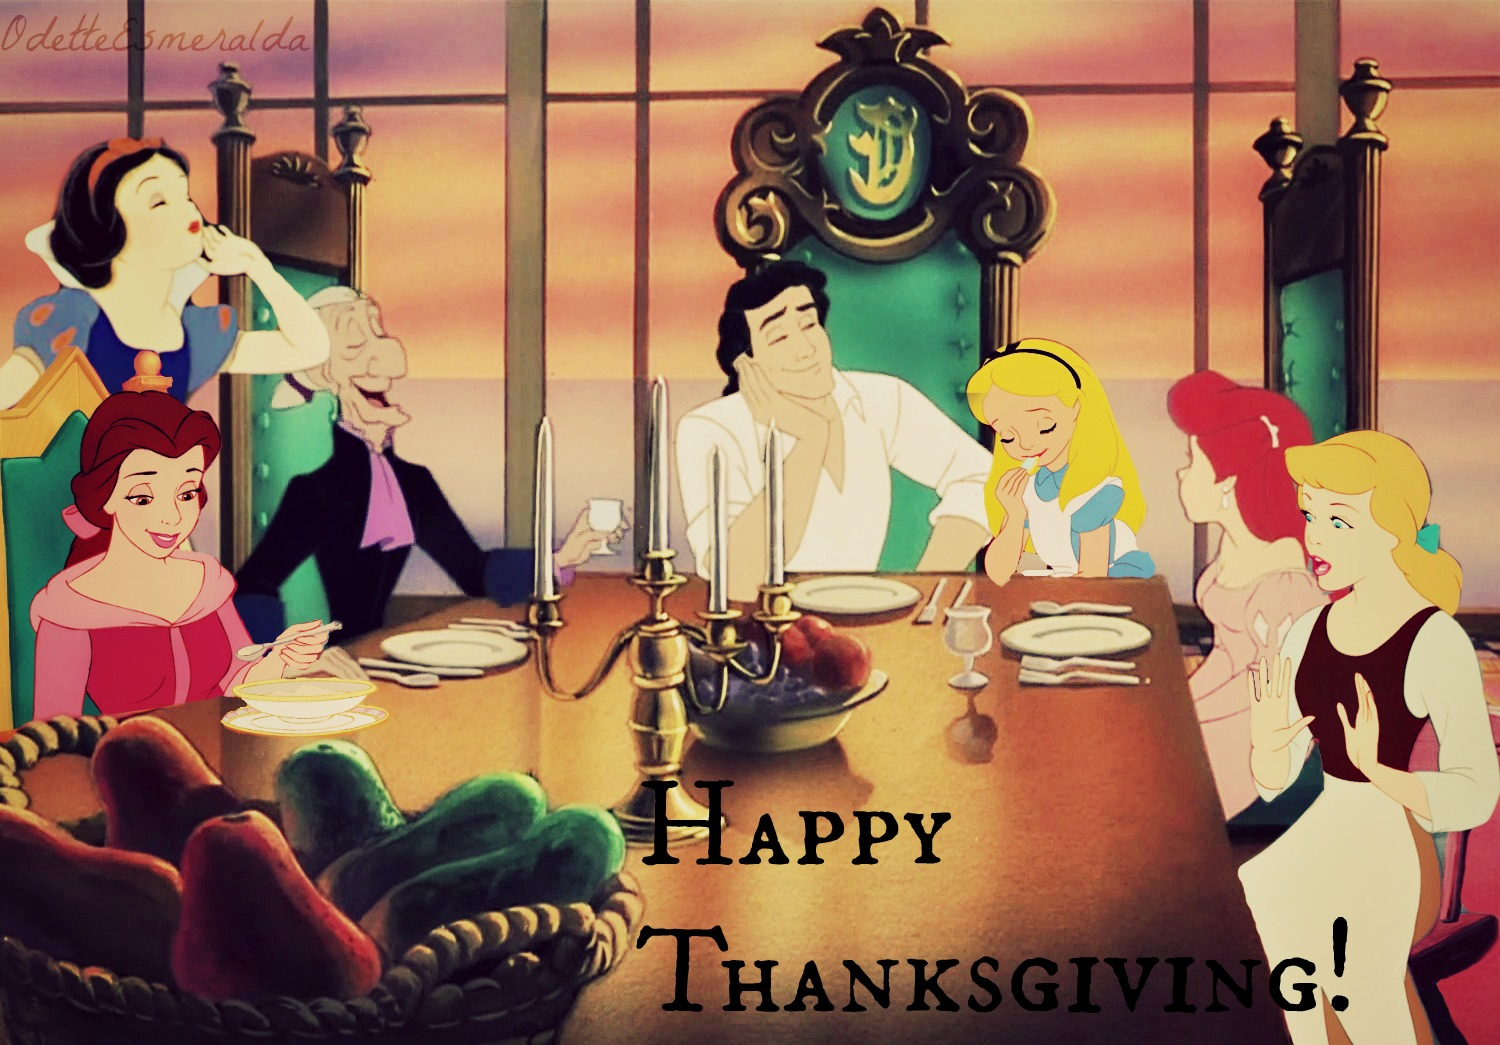 Charlie Brown Fall Wallpaper Thanksgiving Disney Crossover Photo 32839758 Fanpop